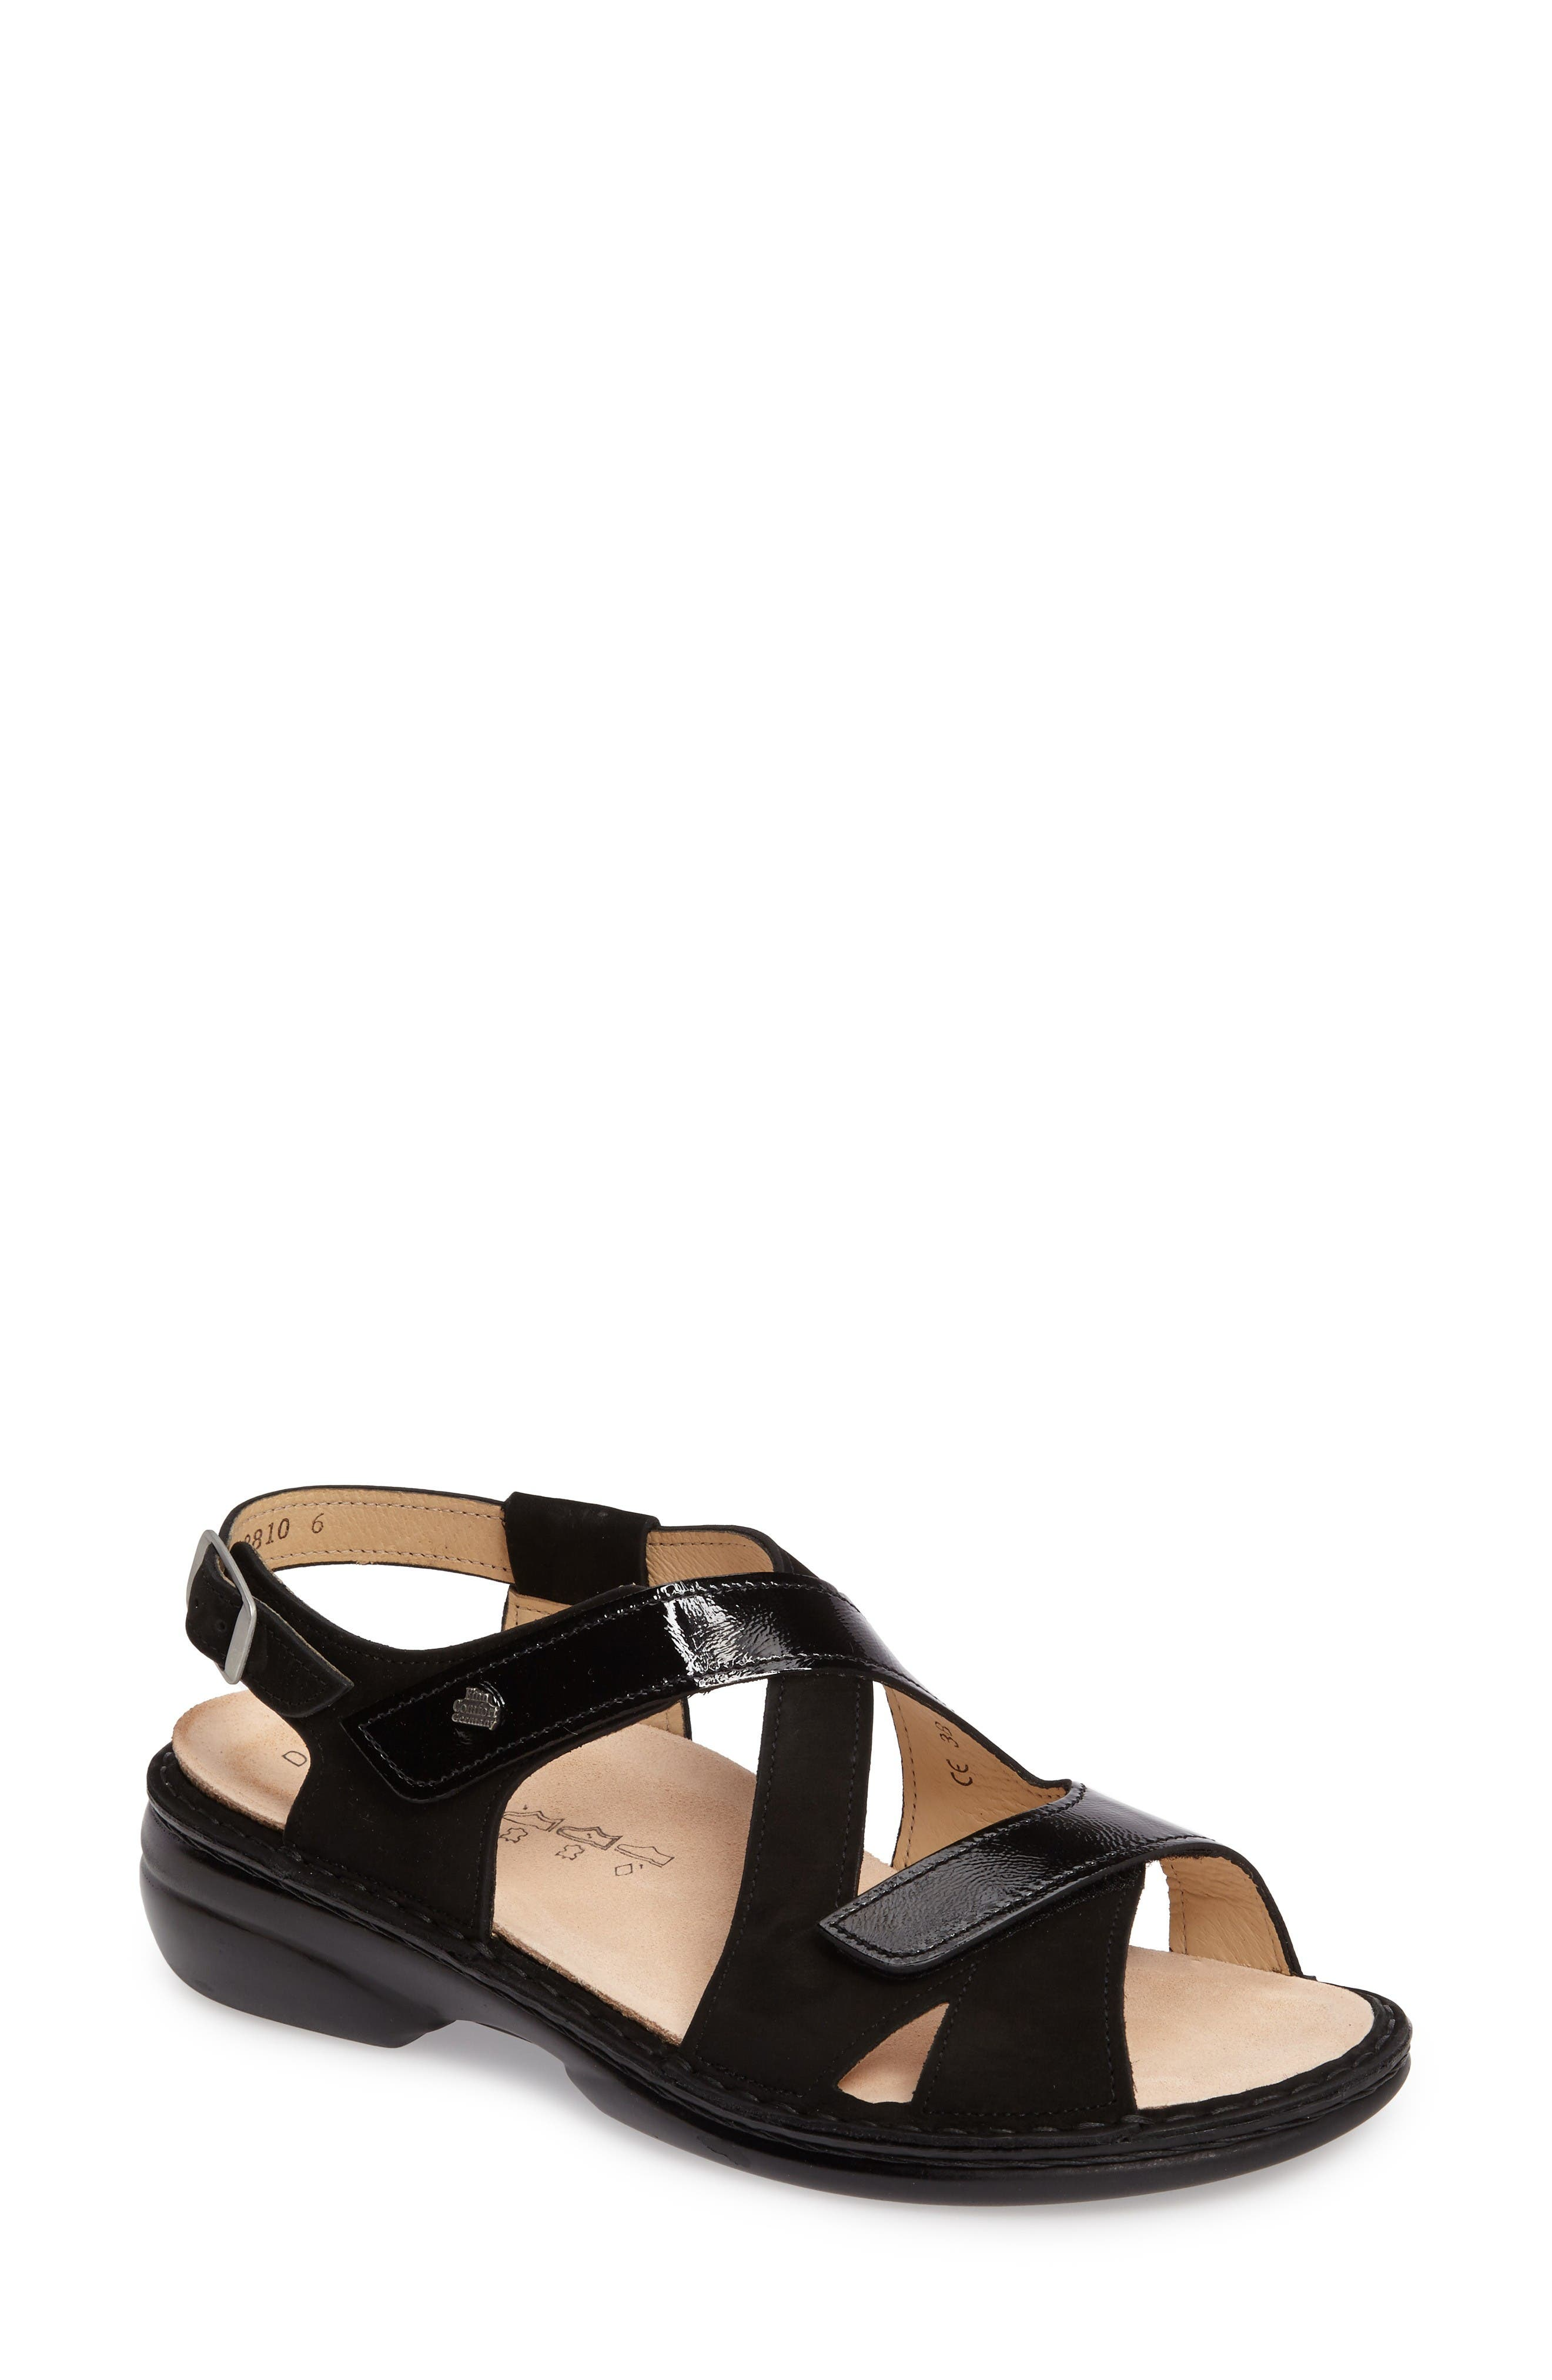 Alternate Image 1 Selected - Finn Comfort Leawood Sandal (Women)